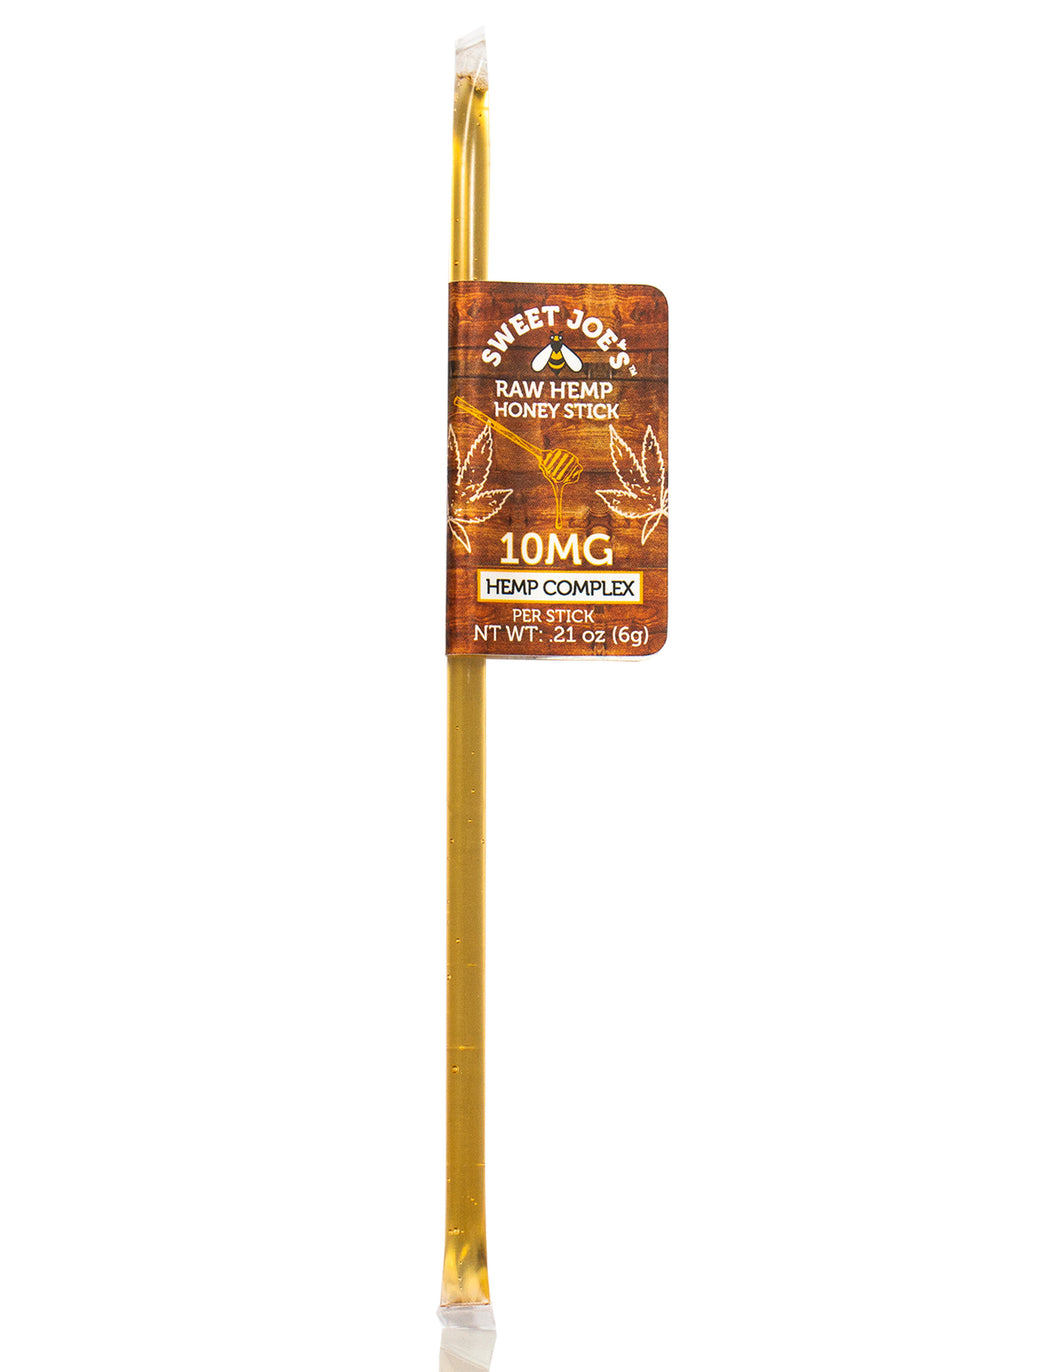 raw hemp honey stick for sale